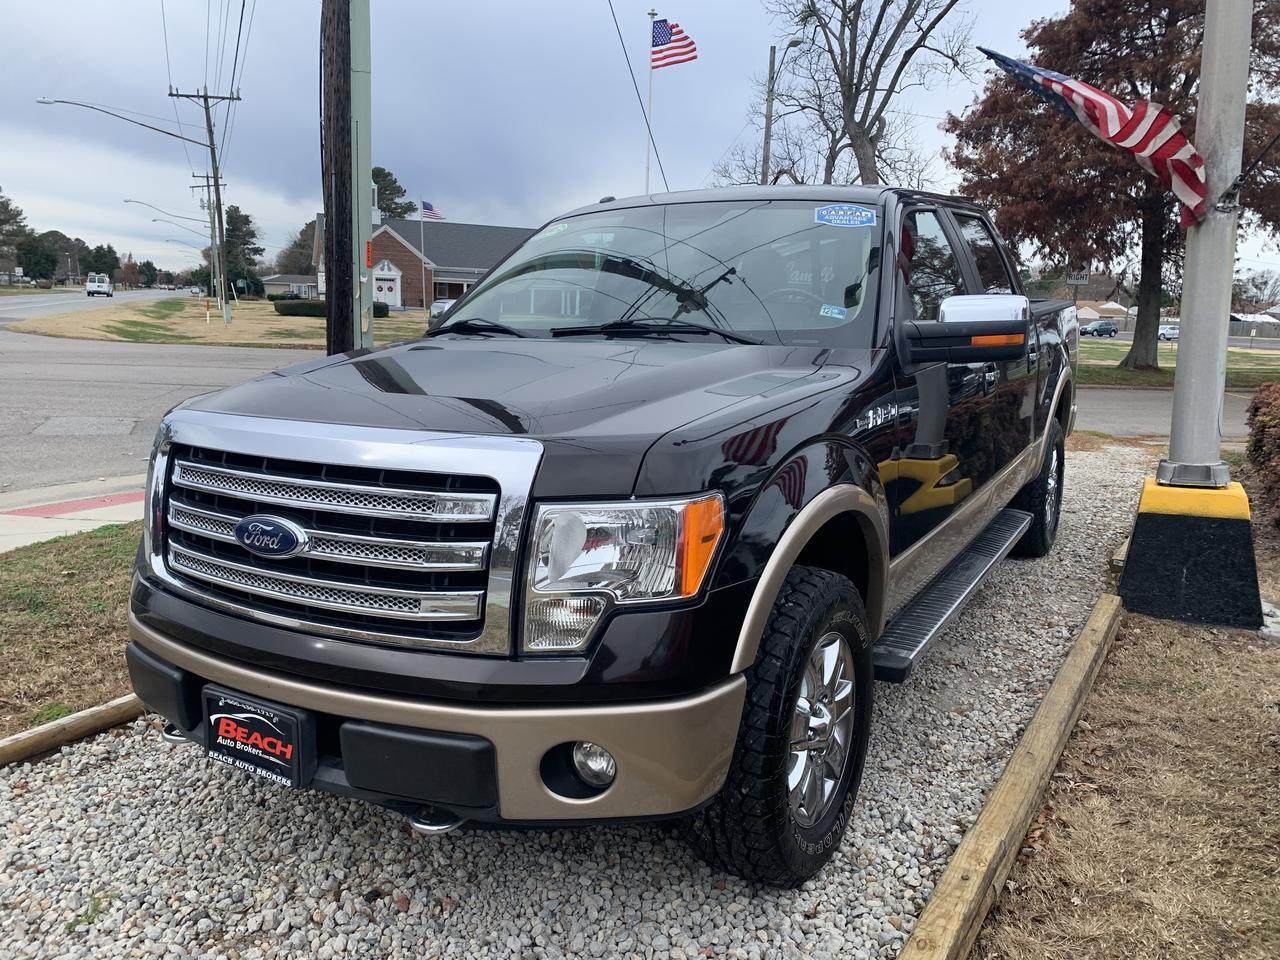 2013 FORD F-150 LARIAT SUPERCREW 4X4, WARRANTY, LEATHER, SUNROOF, HEATED SEATS, NAV, BLUETOOTH, REMOTE START! Norfolk VA